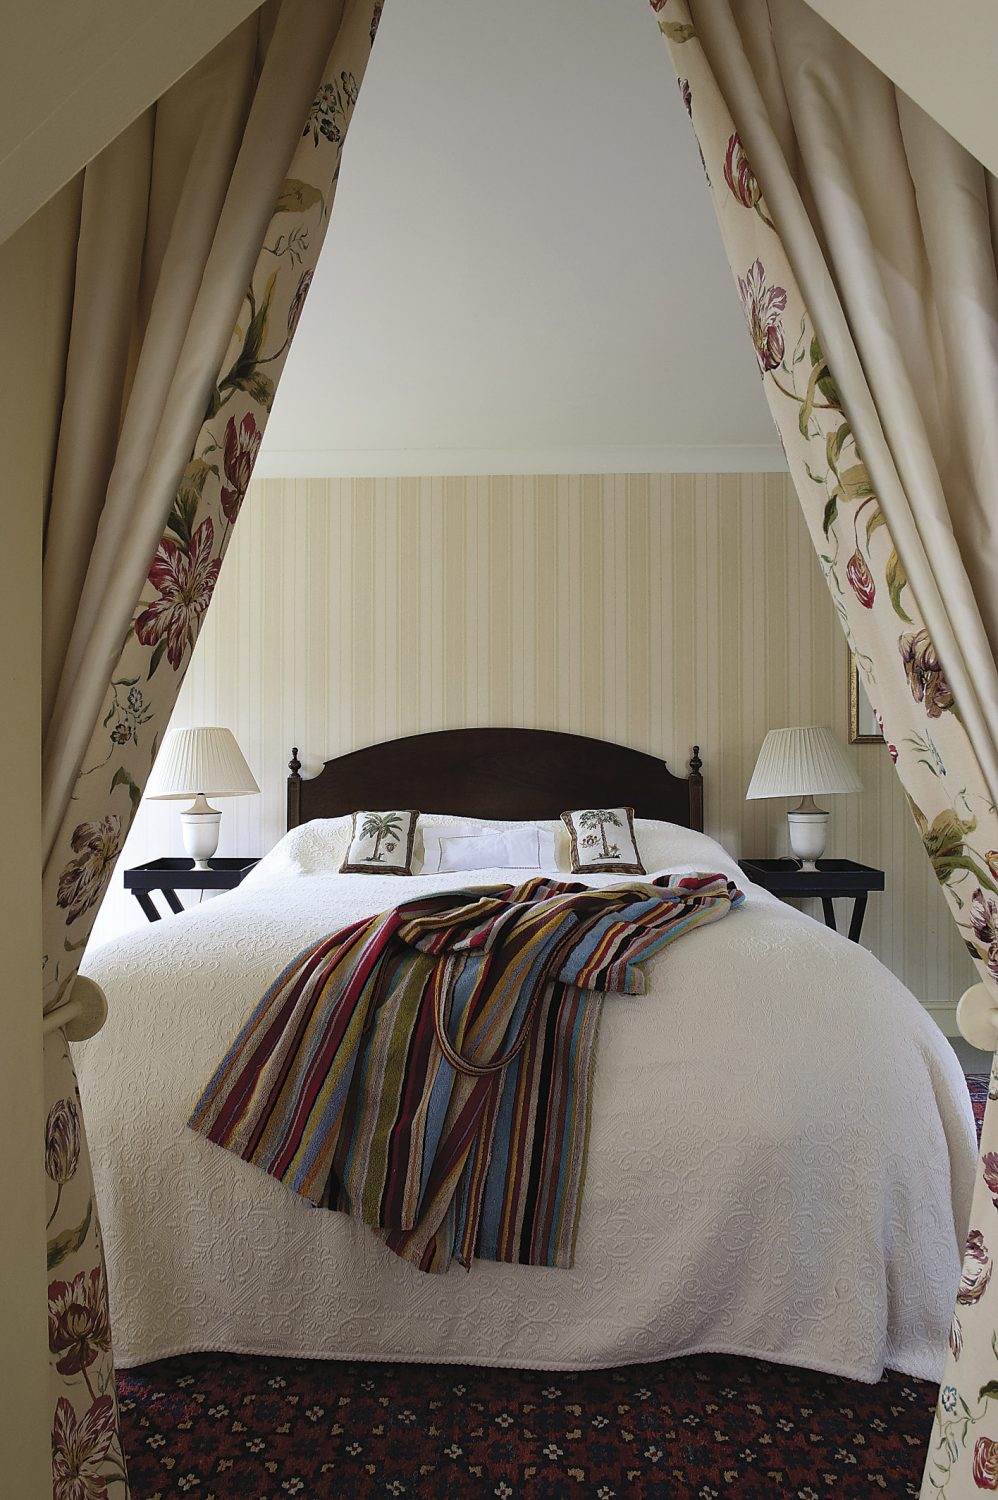 the view from the wonderfully private and cosy en suite, a couple of steps down from the guest bedroom